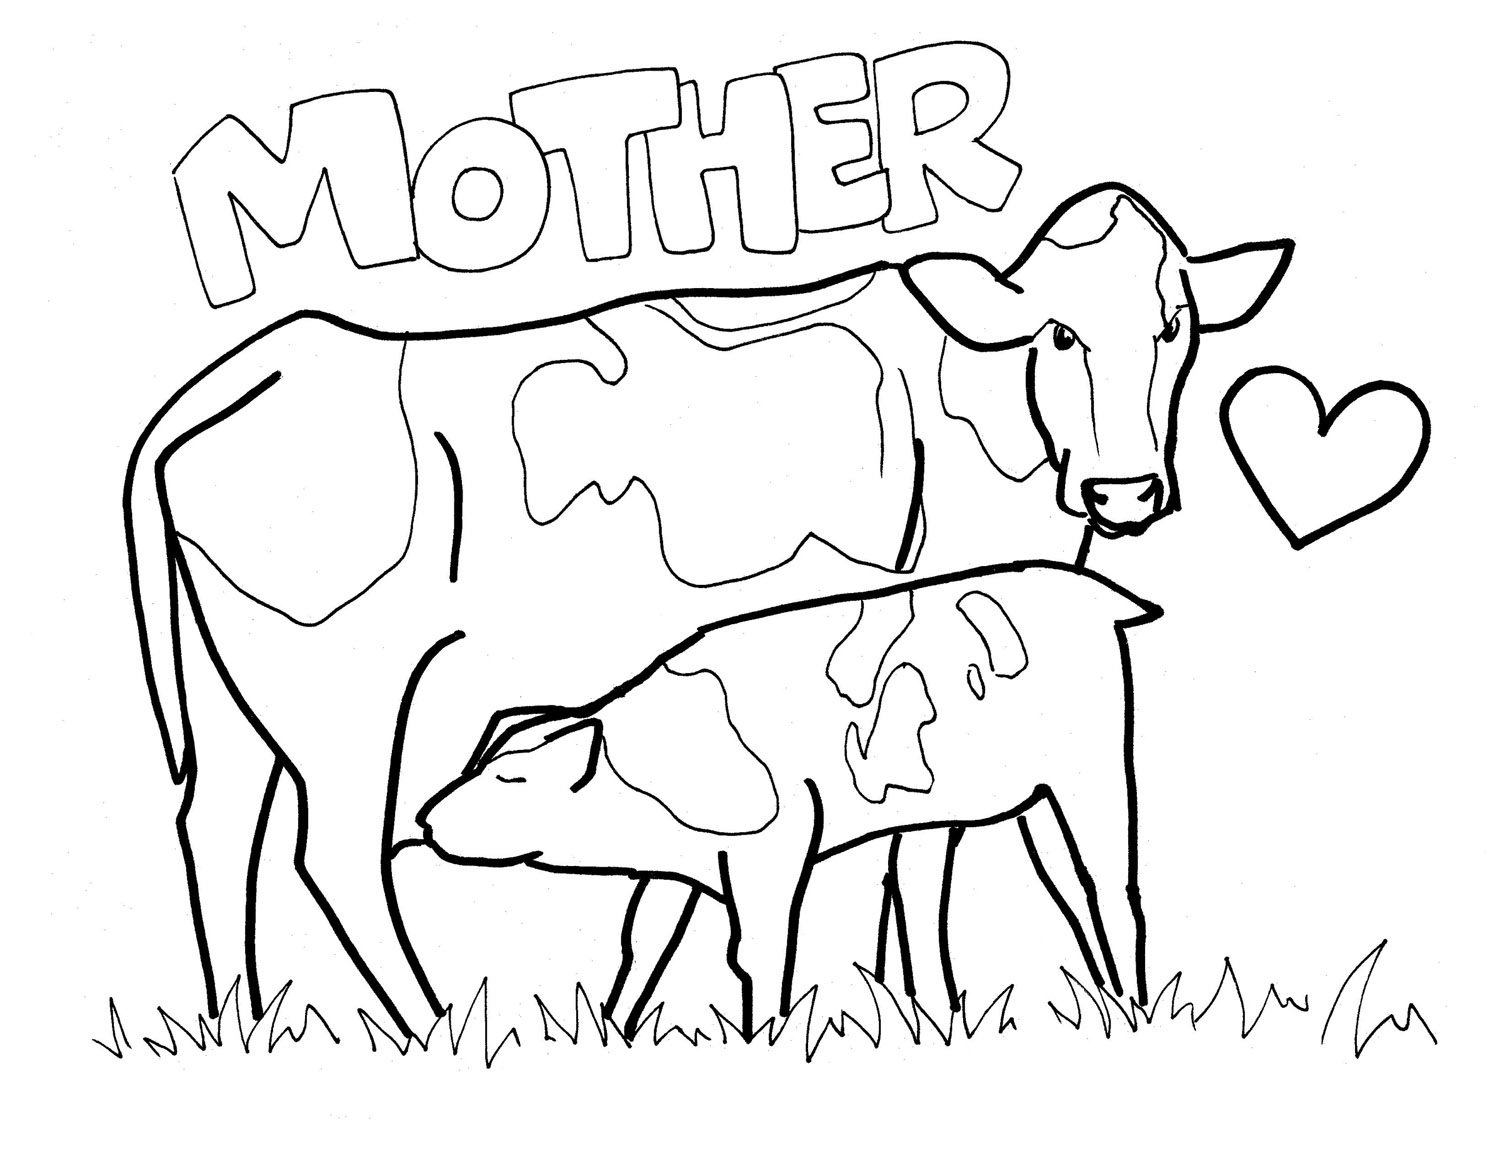 Printable Cow Coloring Pages | Coloring Me